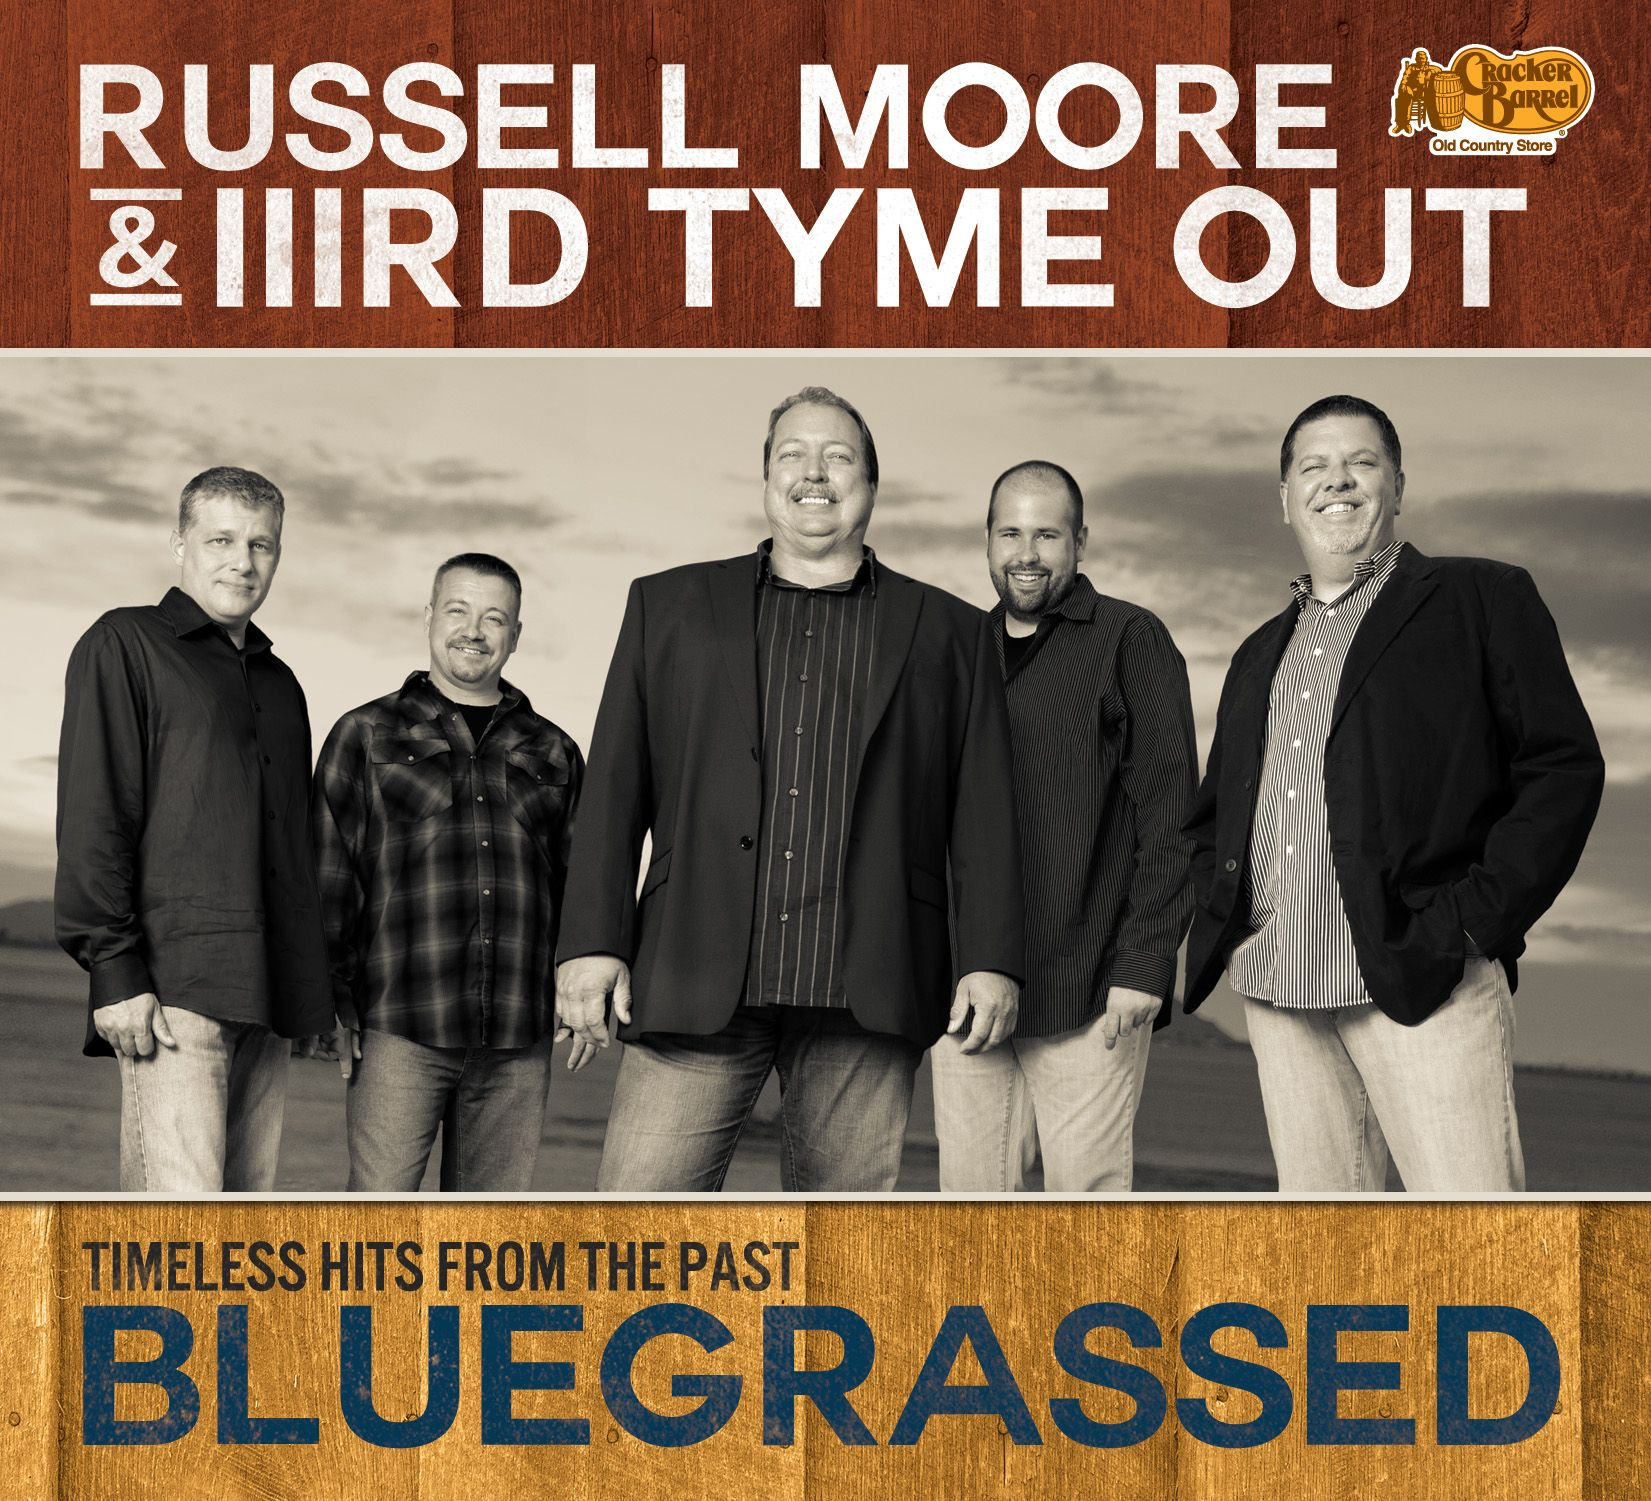 Cracker Barrel Releases Russell Moore & IIIrd Tyme Out Timeless Hits ...